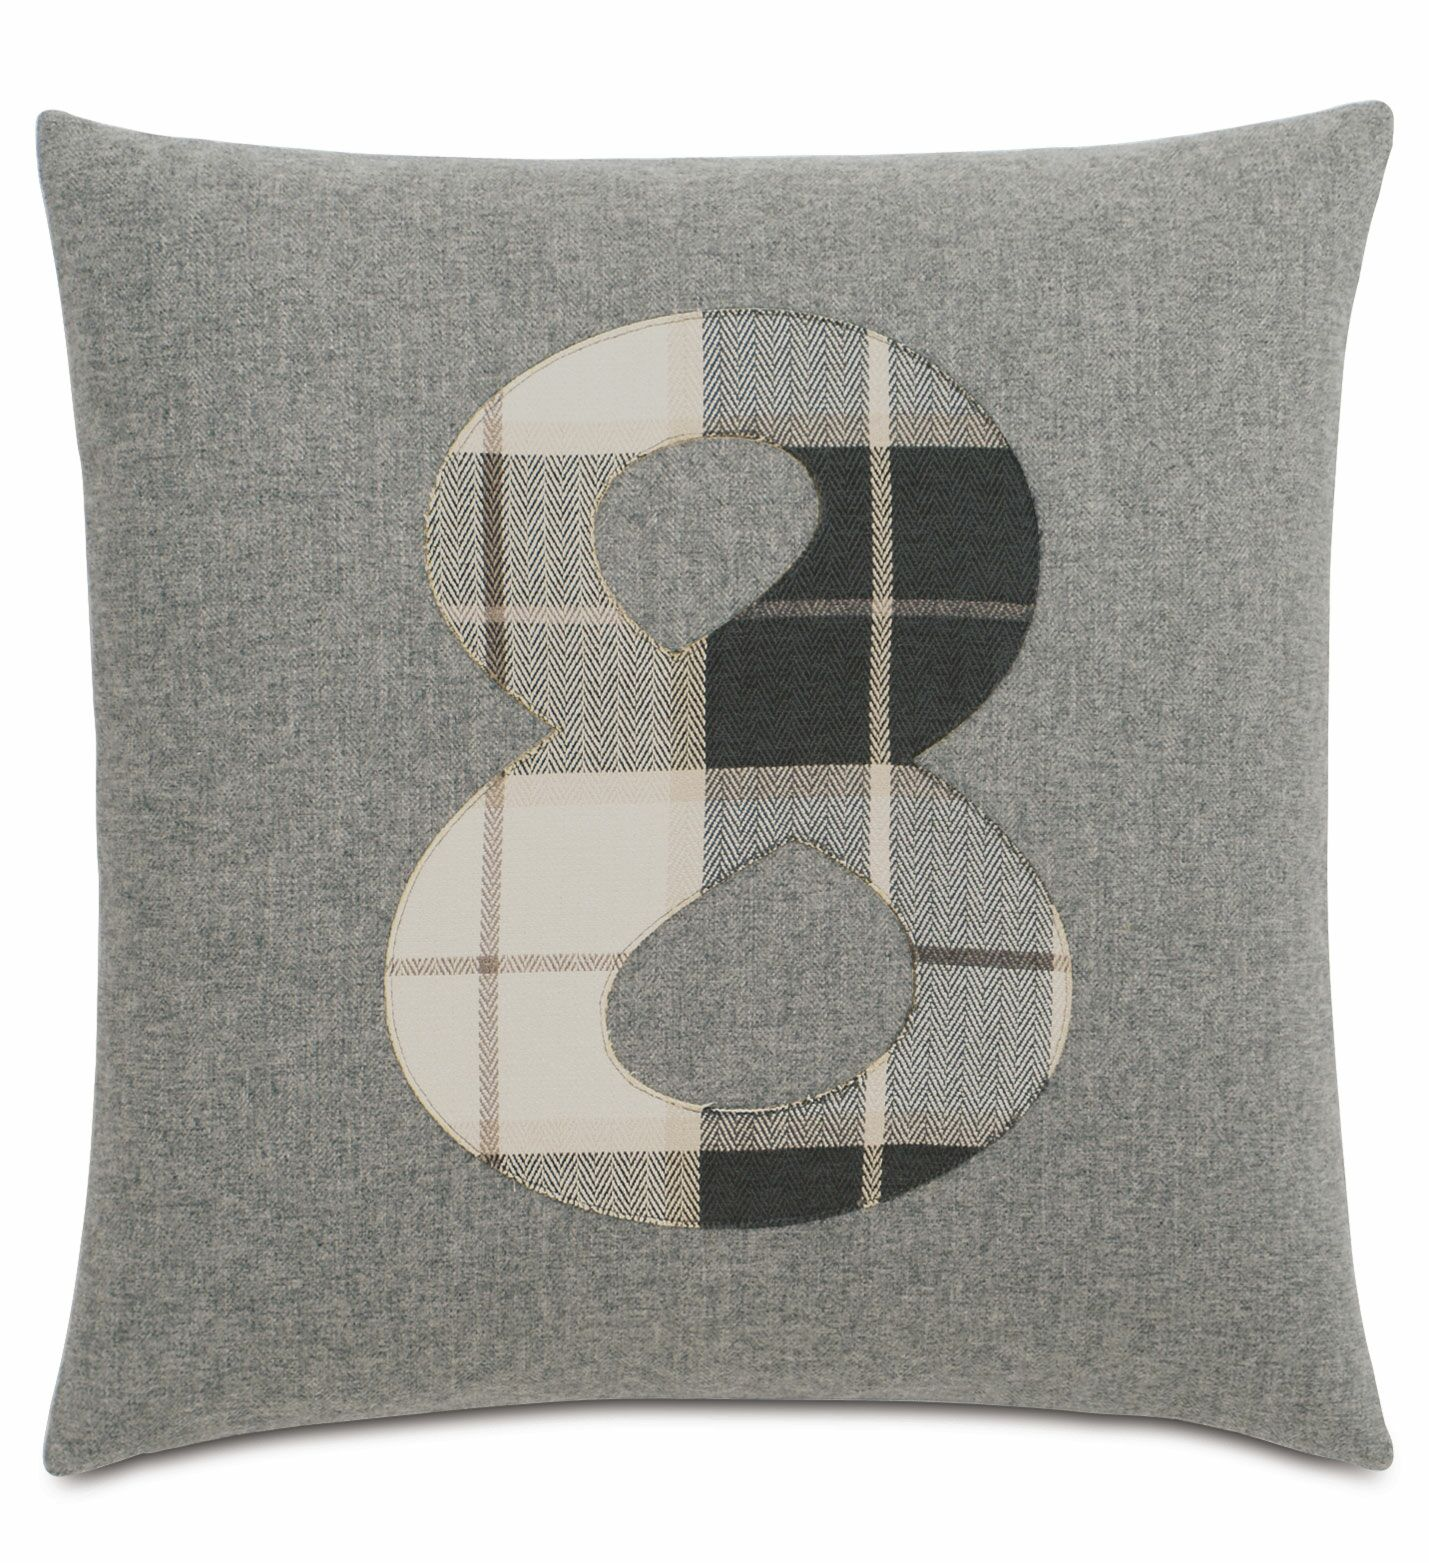 Digits 8 Throw Pillow